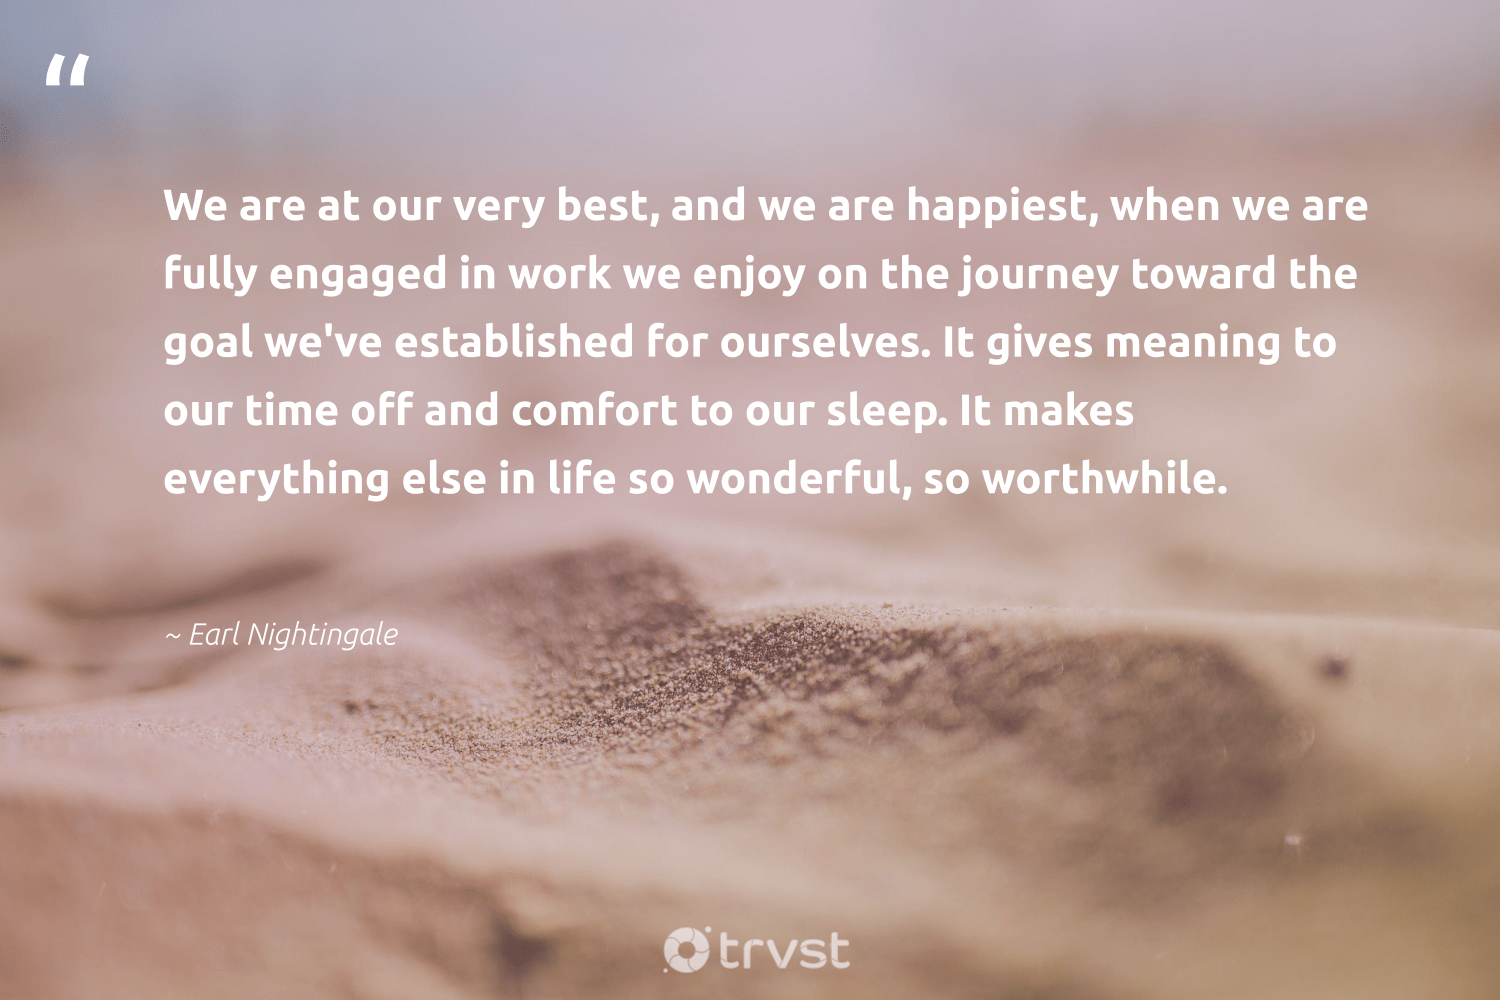 """""""We are at our very best, and we are happiest, when we are fully engaged in work we enjoy on the journey toward the goal we've established for ourselves. It gives meaning to our time off and comfort to our sleep. It makes everything else in life so wonderful, so worthwhile.""""  - Earl Nightingale #trvst #quotes #futureofwork #impact #nevergiveup #socialimpact #begreat #dosomething #softskills #bethechange #ecoconscious #dotherightthing"""